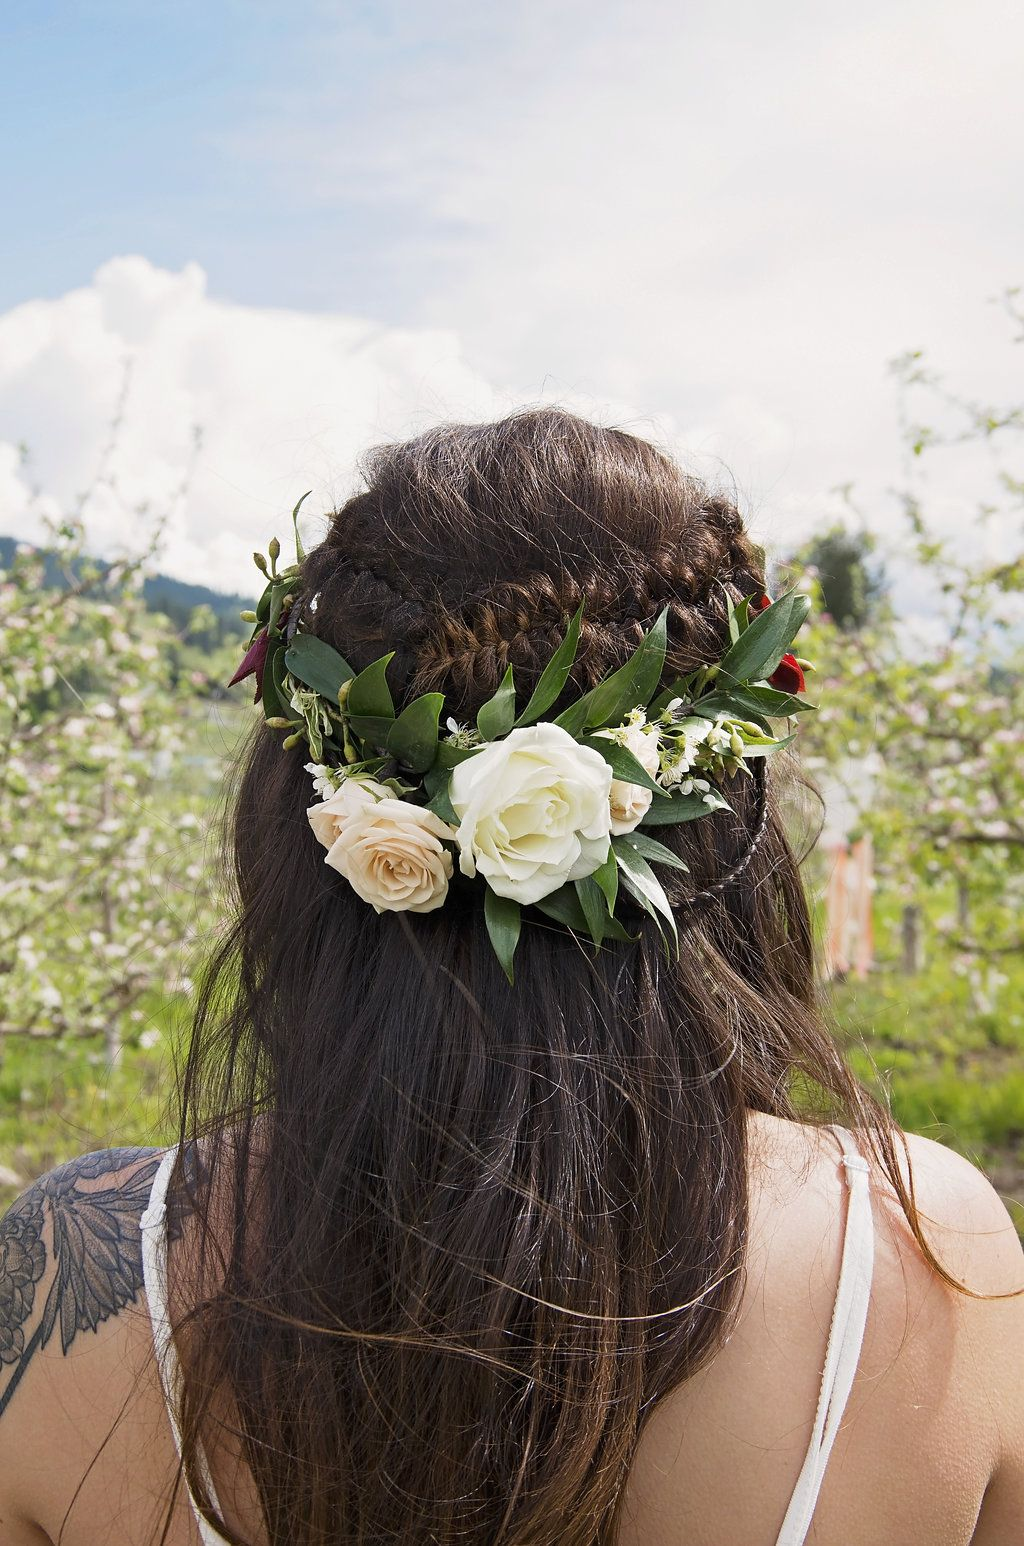 Boho Bridal Flower Crown Featuring Italian Ruscus Spray Roses And Cherry Blossoms Photo Credit Vanessa Lee Imagery